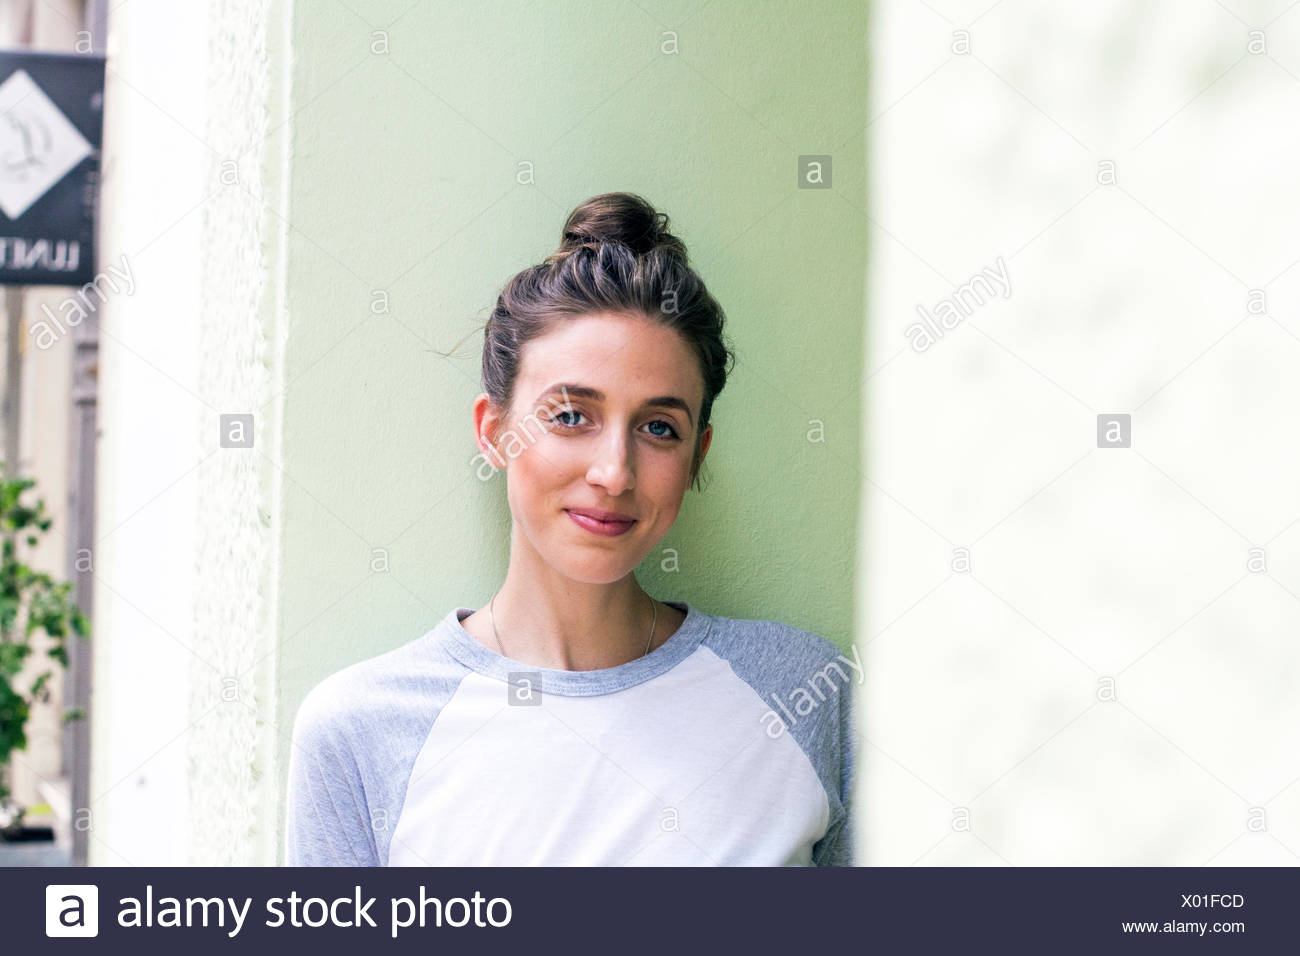 Portrait of smiling young woman with hairbun - Stock Image